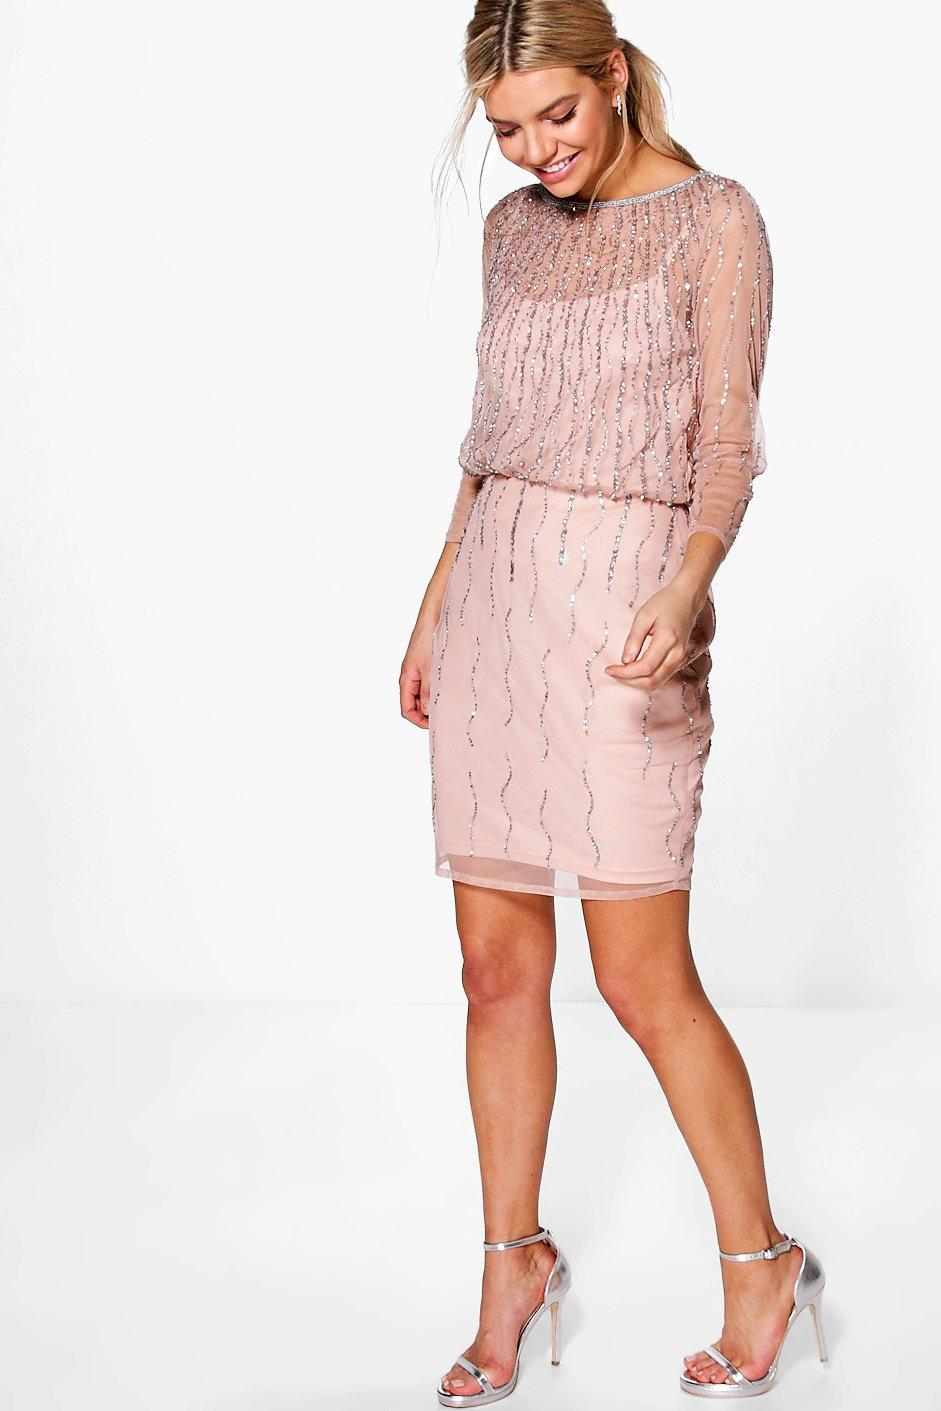 Buy Boardwalk Empire Inspired Dresses Boutique Marlena Beaded Batwing Dress blush $49.00 AT vintagedancer.com